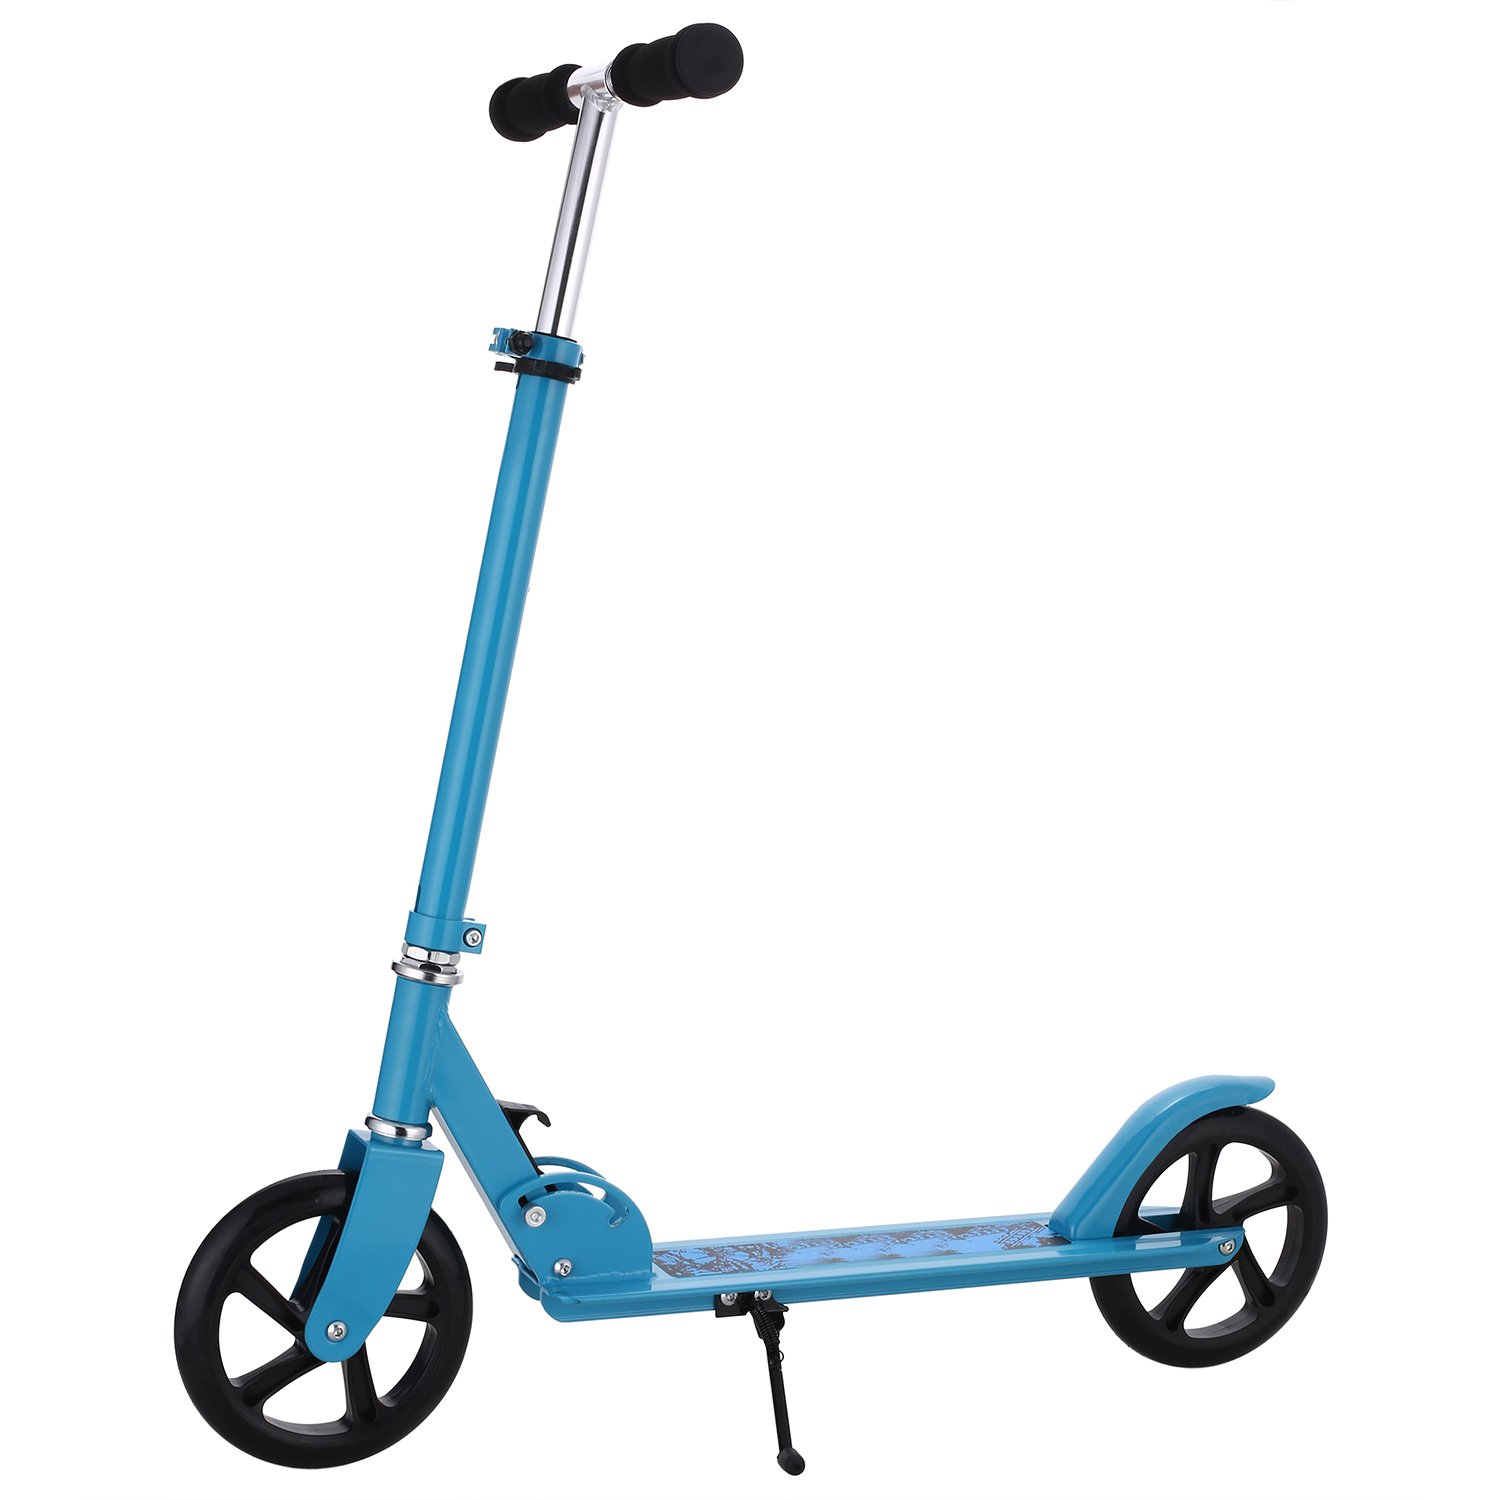 WeSkate Adult Scooter Easy Folding, Lightweight Kick Scooter with Rear Fender&Disc Brake, 200mm Big Wheels, 220 lbs Weight Capacity